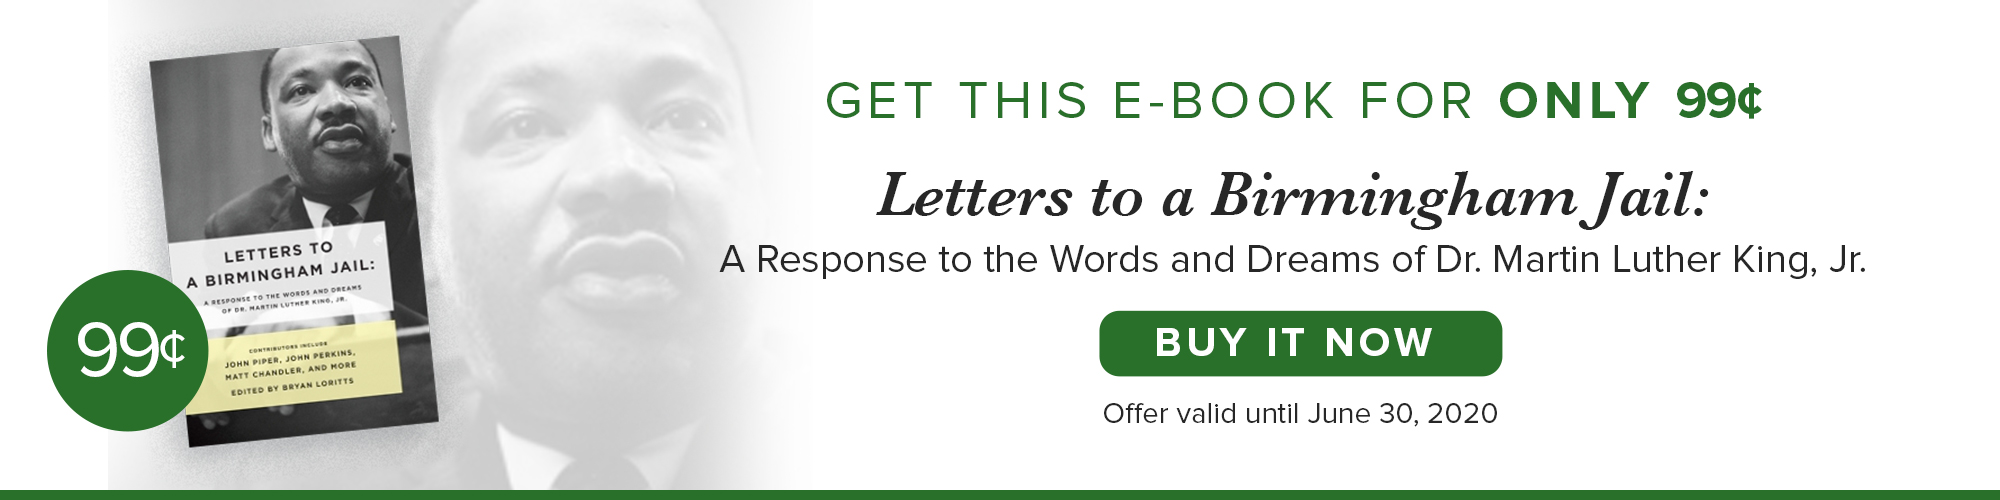 GET THIS E-BOOK FOR 99¢ - Letters to a Birmingham Jail - A Response to the Words and Dreams of Dr. Martin Luther King, Jr.